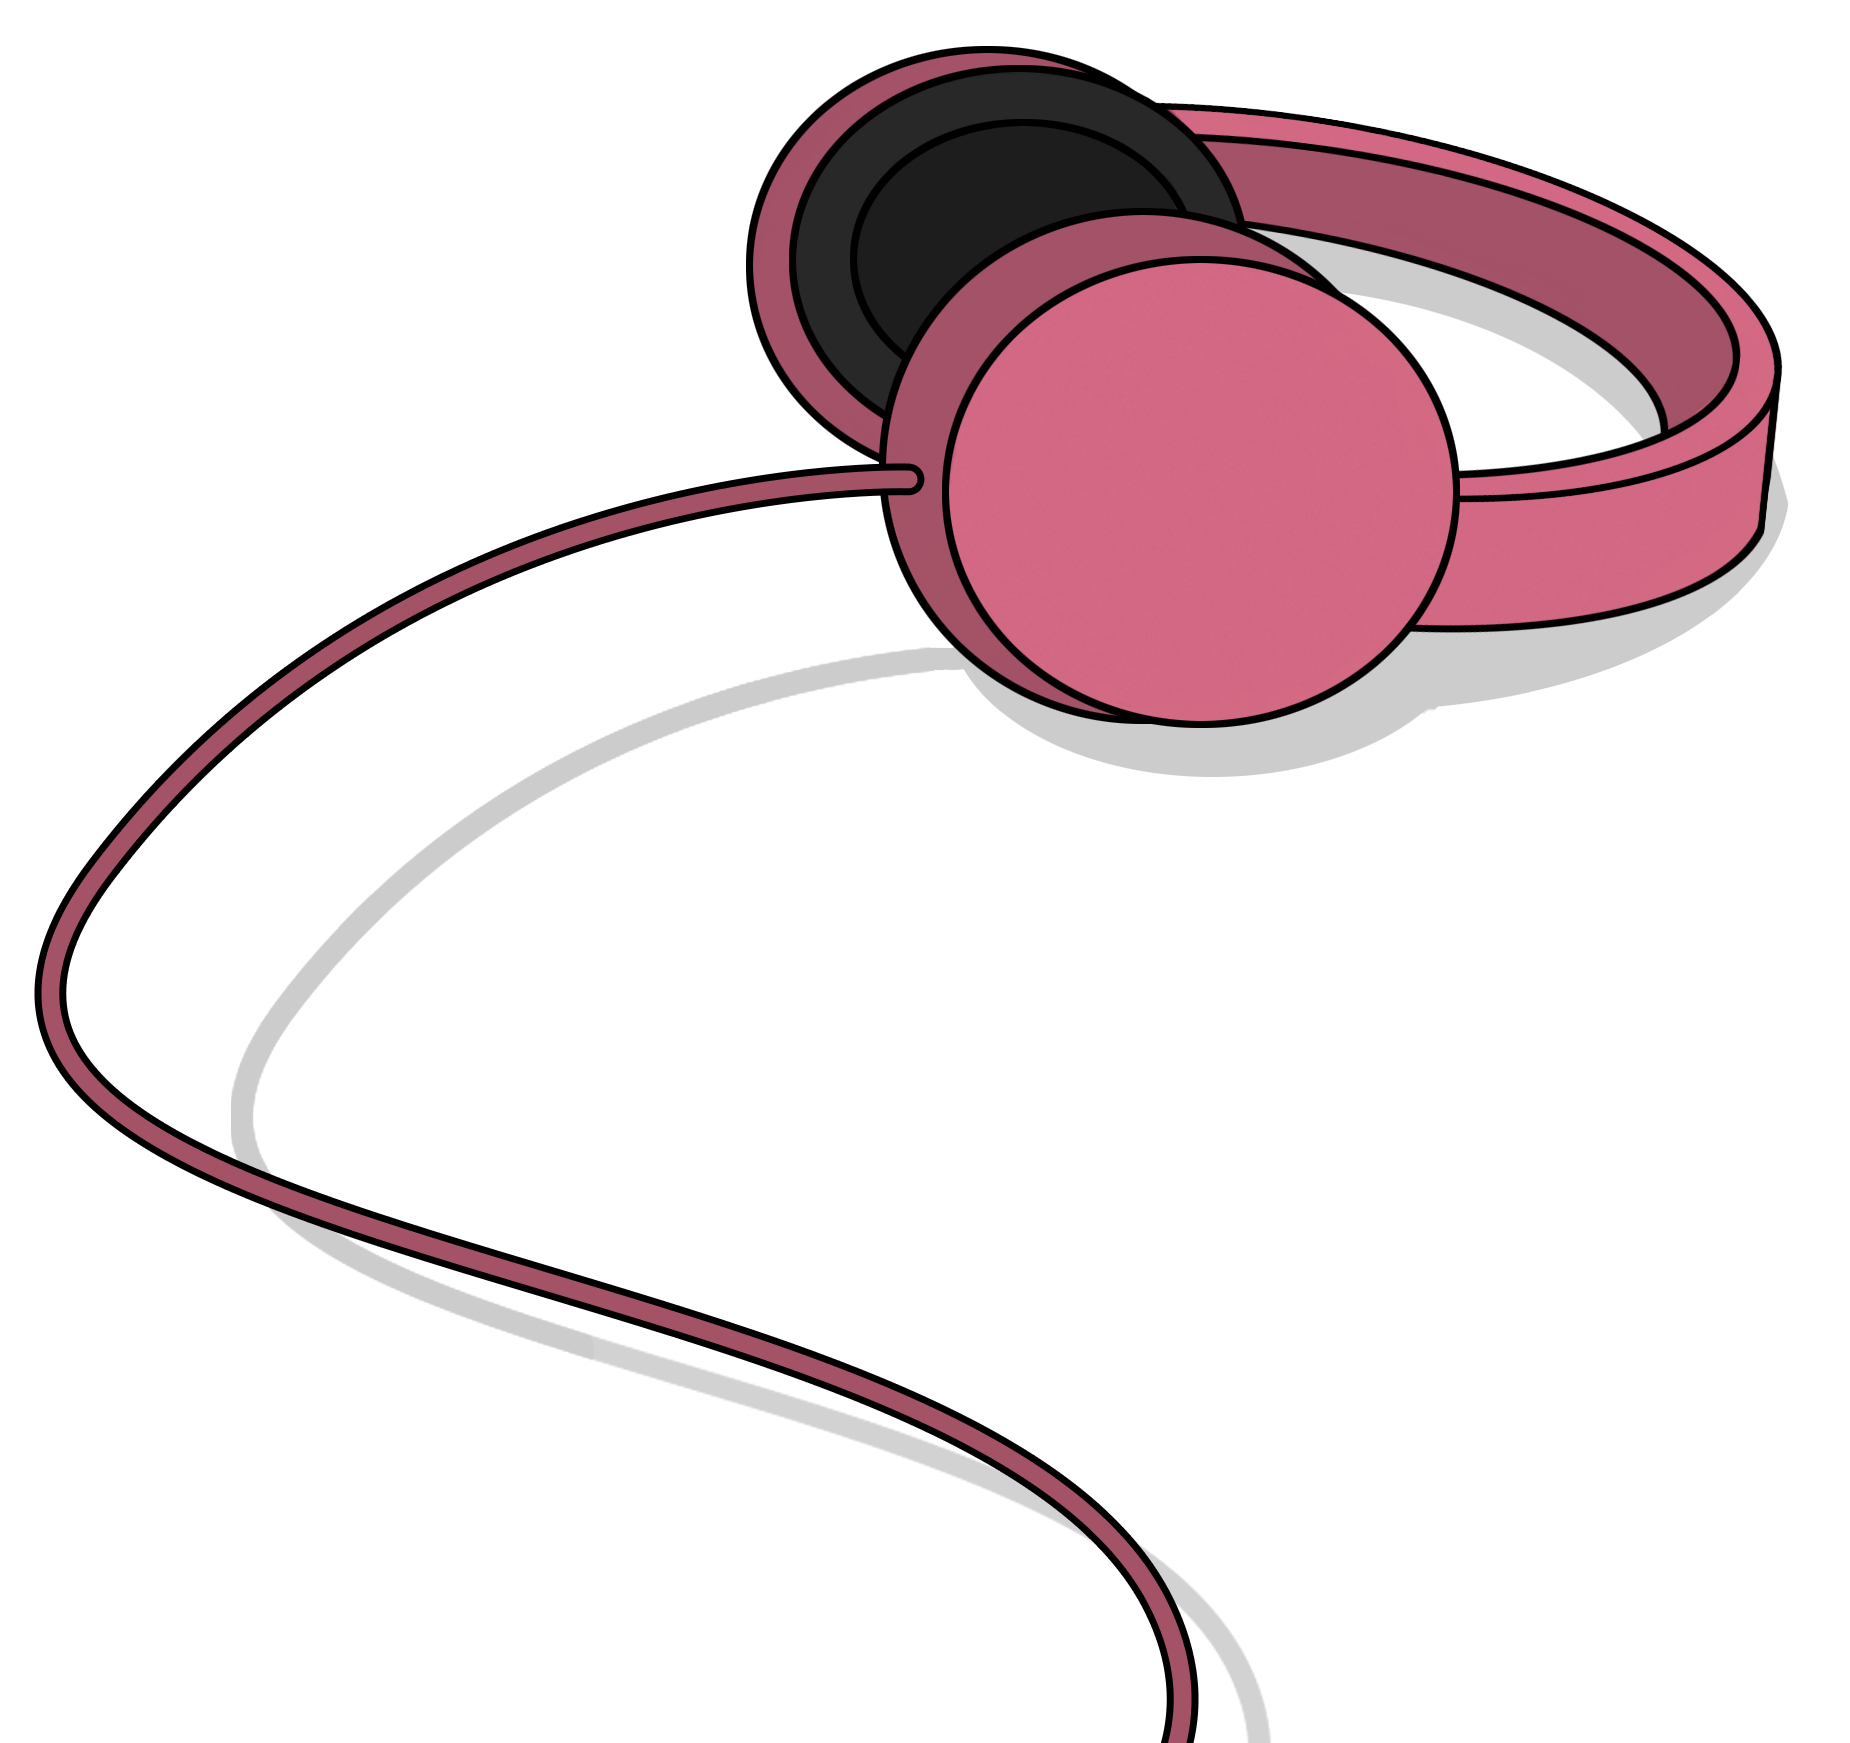 Flux Pavillion Headphones Illustration